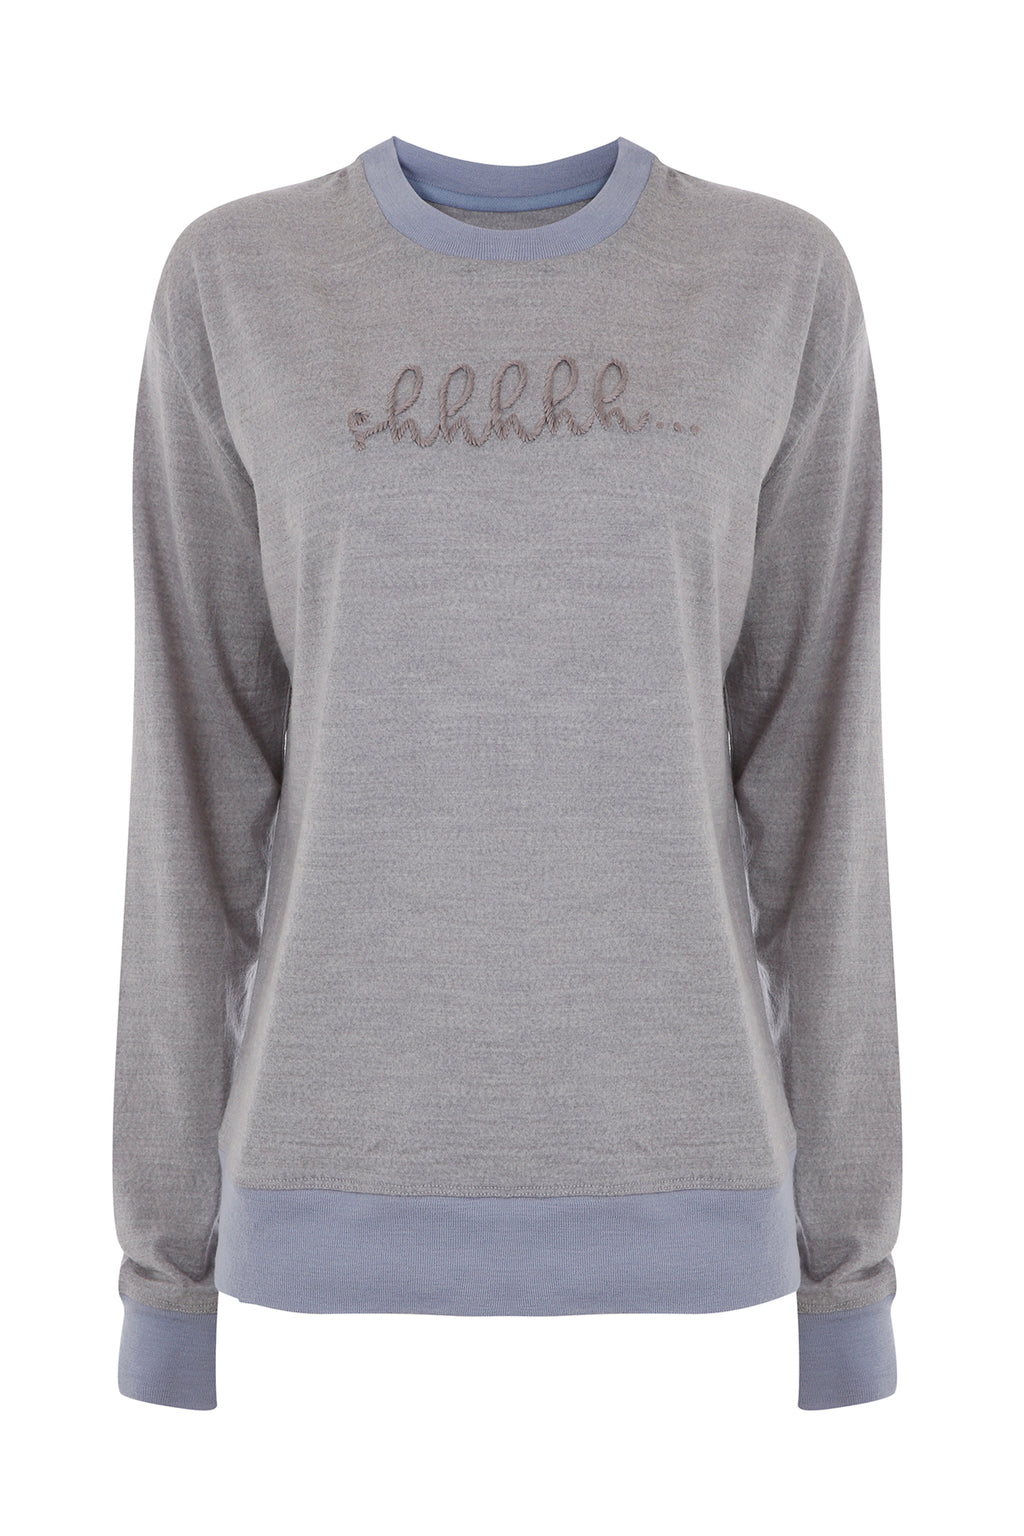 Luxe + Hardy | Luxe & Hardy | Loungewear to travel in | Top loungewear brands | Loungewear for older ladies | sweater | sweatshirt | Merino wool | embroidered sweater